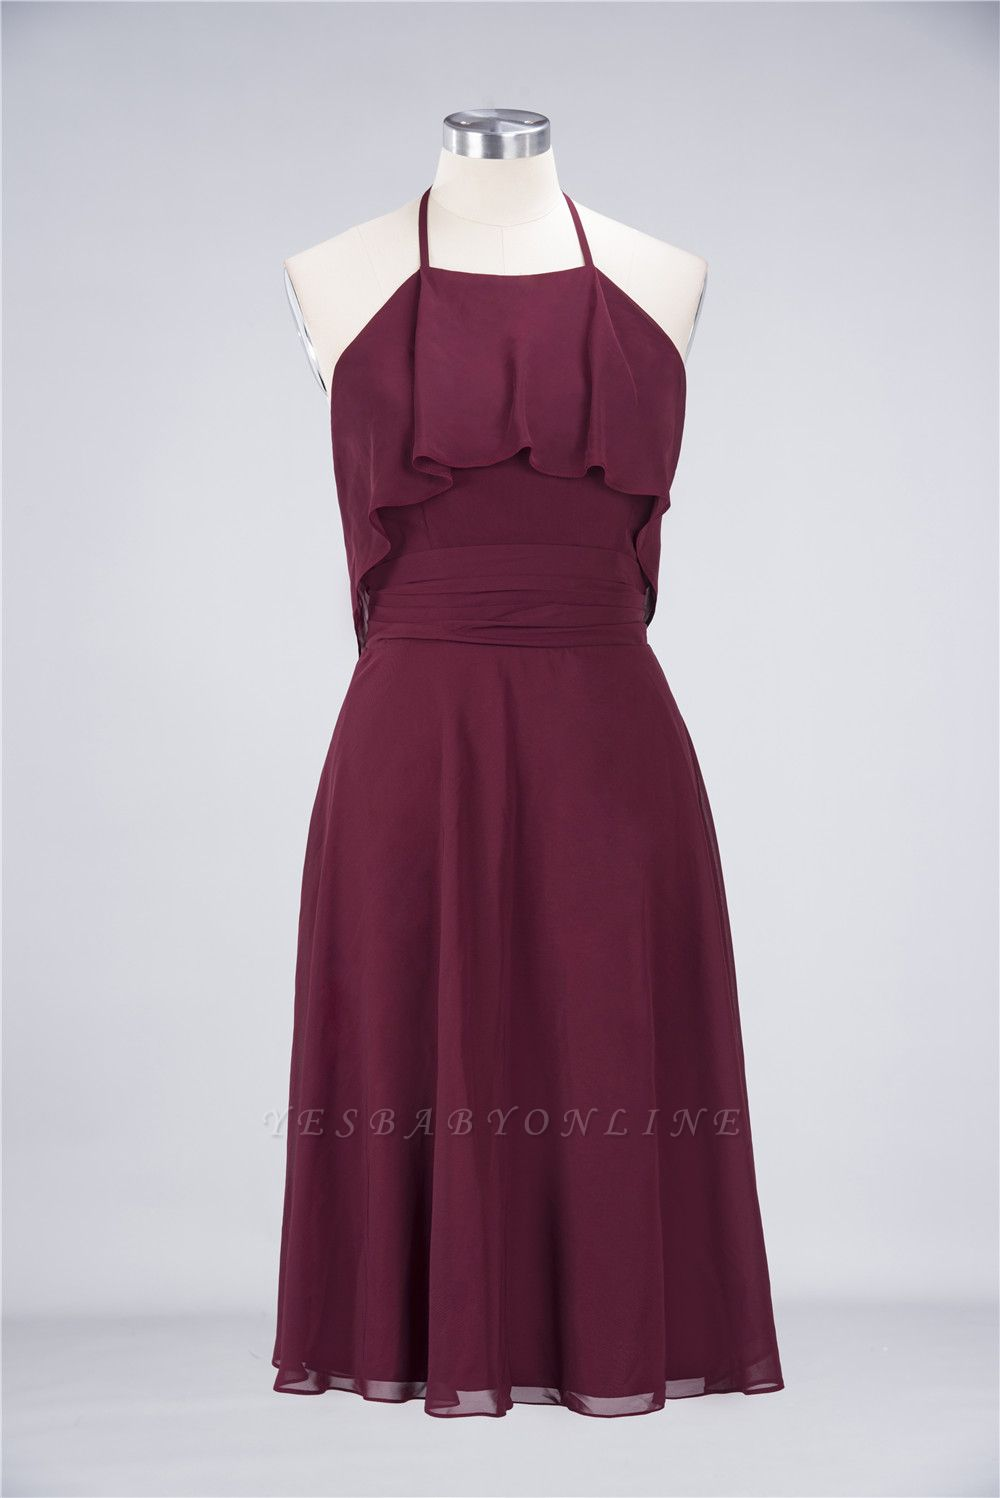 A-Line Halter Sleeveless Knee-Length  Bridesmaid Dress with Ruffles